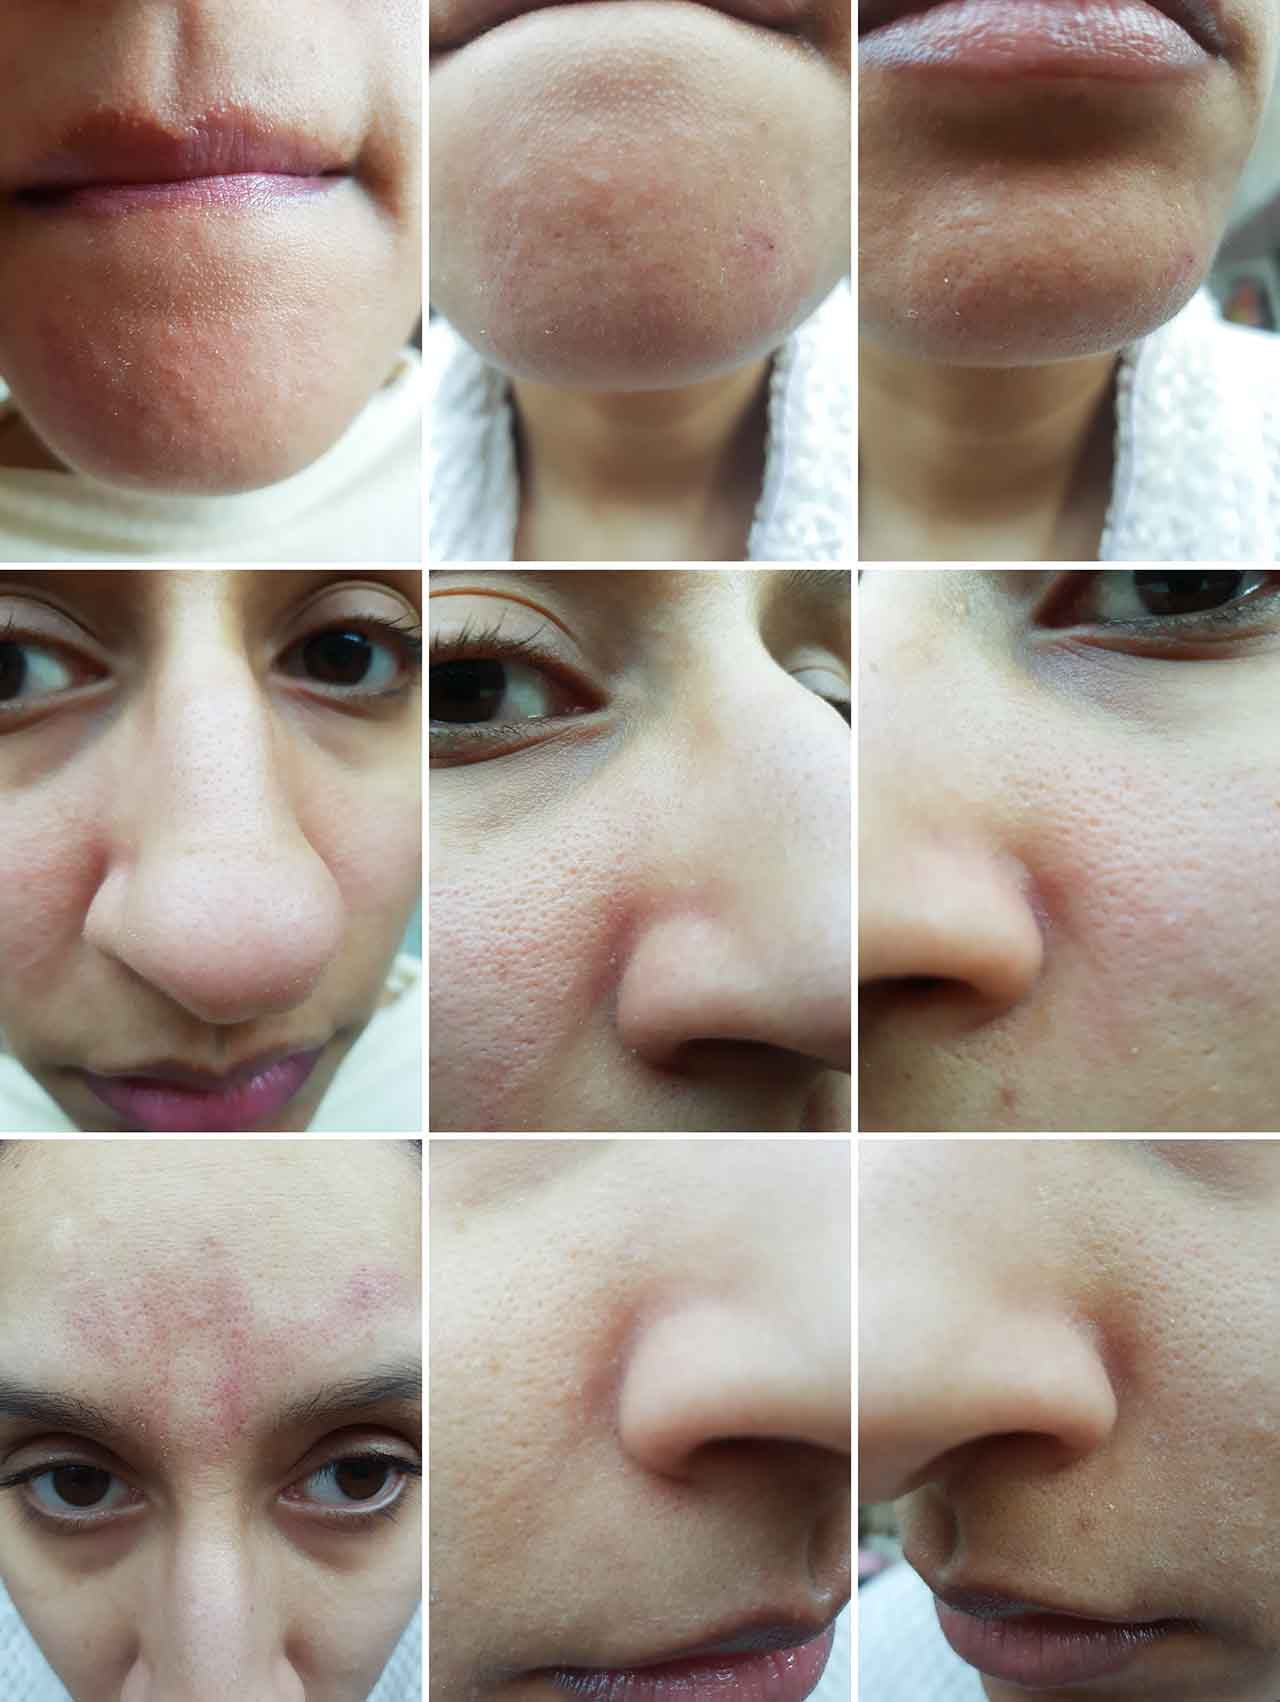 "How Effective Is The Blackhead Suction Remover [Review]: As you can see, after use the skin would become red and look almost bruised in places, however this did not last long and left no negative lasting effects. This happened particularly with the Big Round Nozzle when on the highest power level. When using it, there was no pain or discomfort and it was actually fascinating seeing the pores being cleaned in front of your eyes! If you have watched other videos of these Blackhead Suction Removers, you will know that they are pretty graphic and in some cases show some pretty clogged pores being ""sucked"" clean! I must emphasise I did not see my pores being quite so dramatically cleaned as on other videos, but I did see the Remover working its magic on some of my more congested areas! I am quite fortunate that as much as I have reasonably large pores they aren't excessively clogged so the Remover did not have too hard a job to perform on my skin but I would love to test it on someone whose skin needs a really deep clean to see how effective it is!"